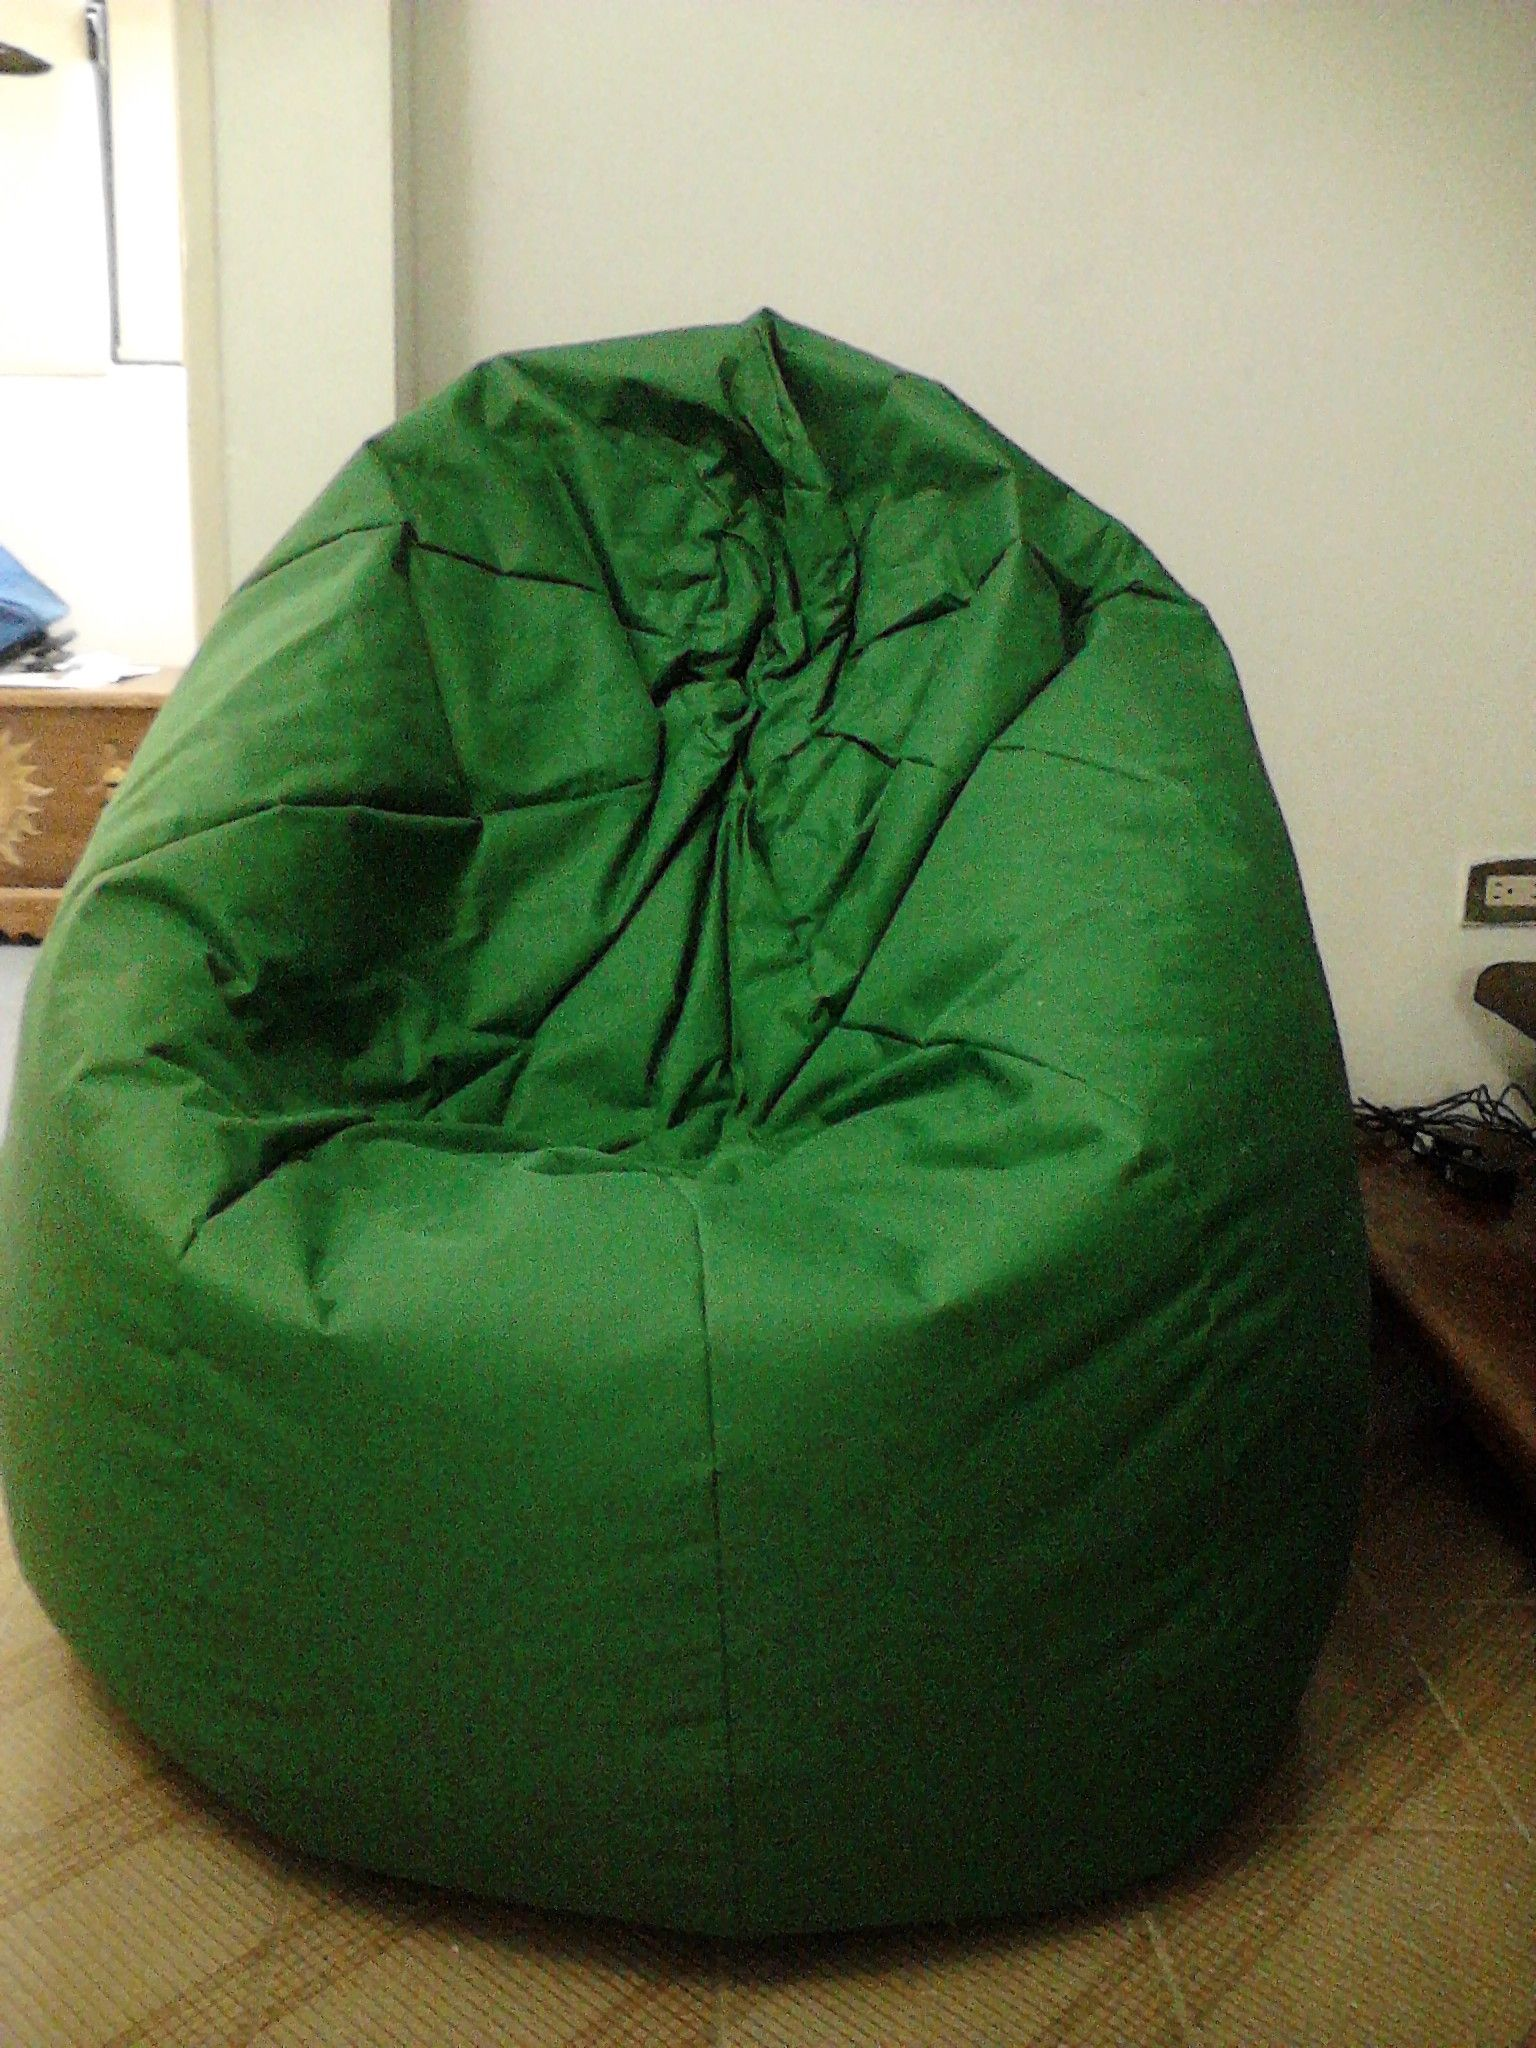 Delicieux Puff Tipo Pera/ Beanbag Chair 5.5 Kg Color Verde Oliva/ Olive Green